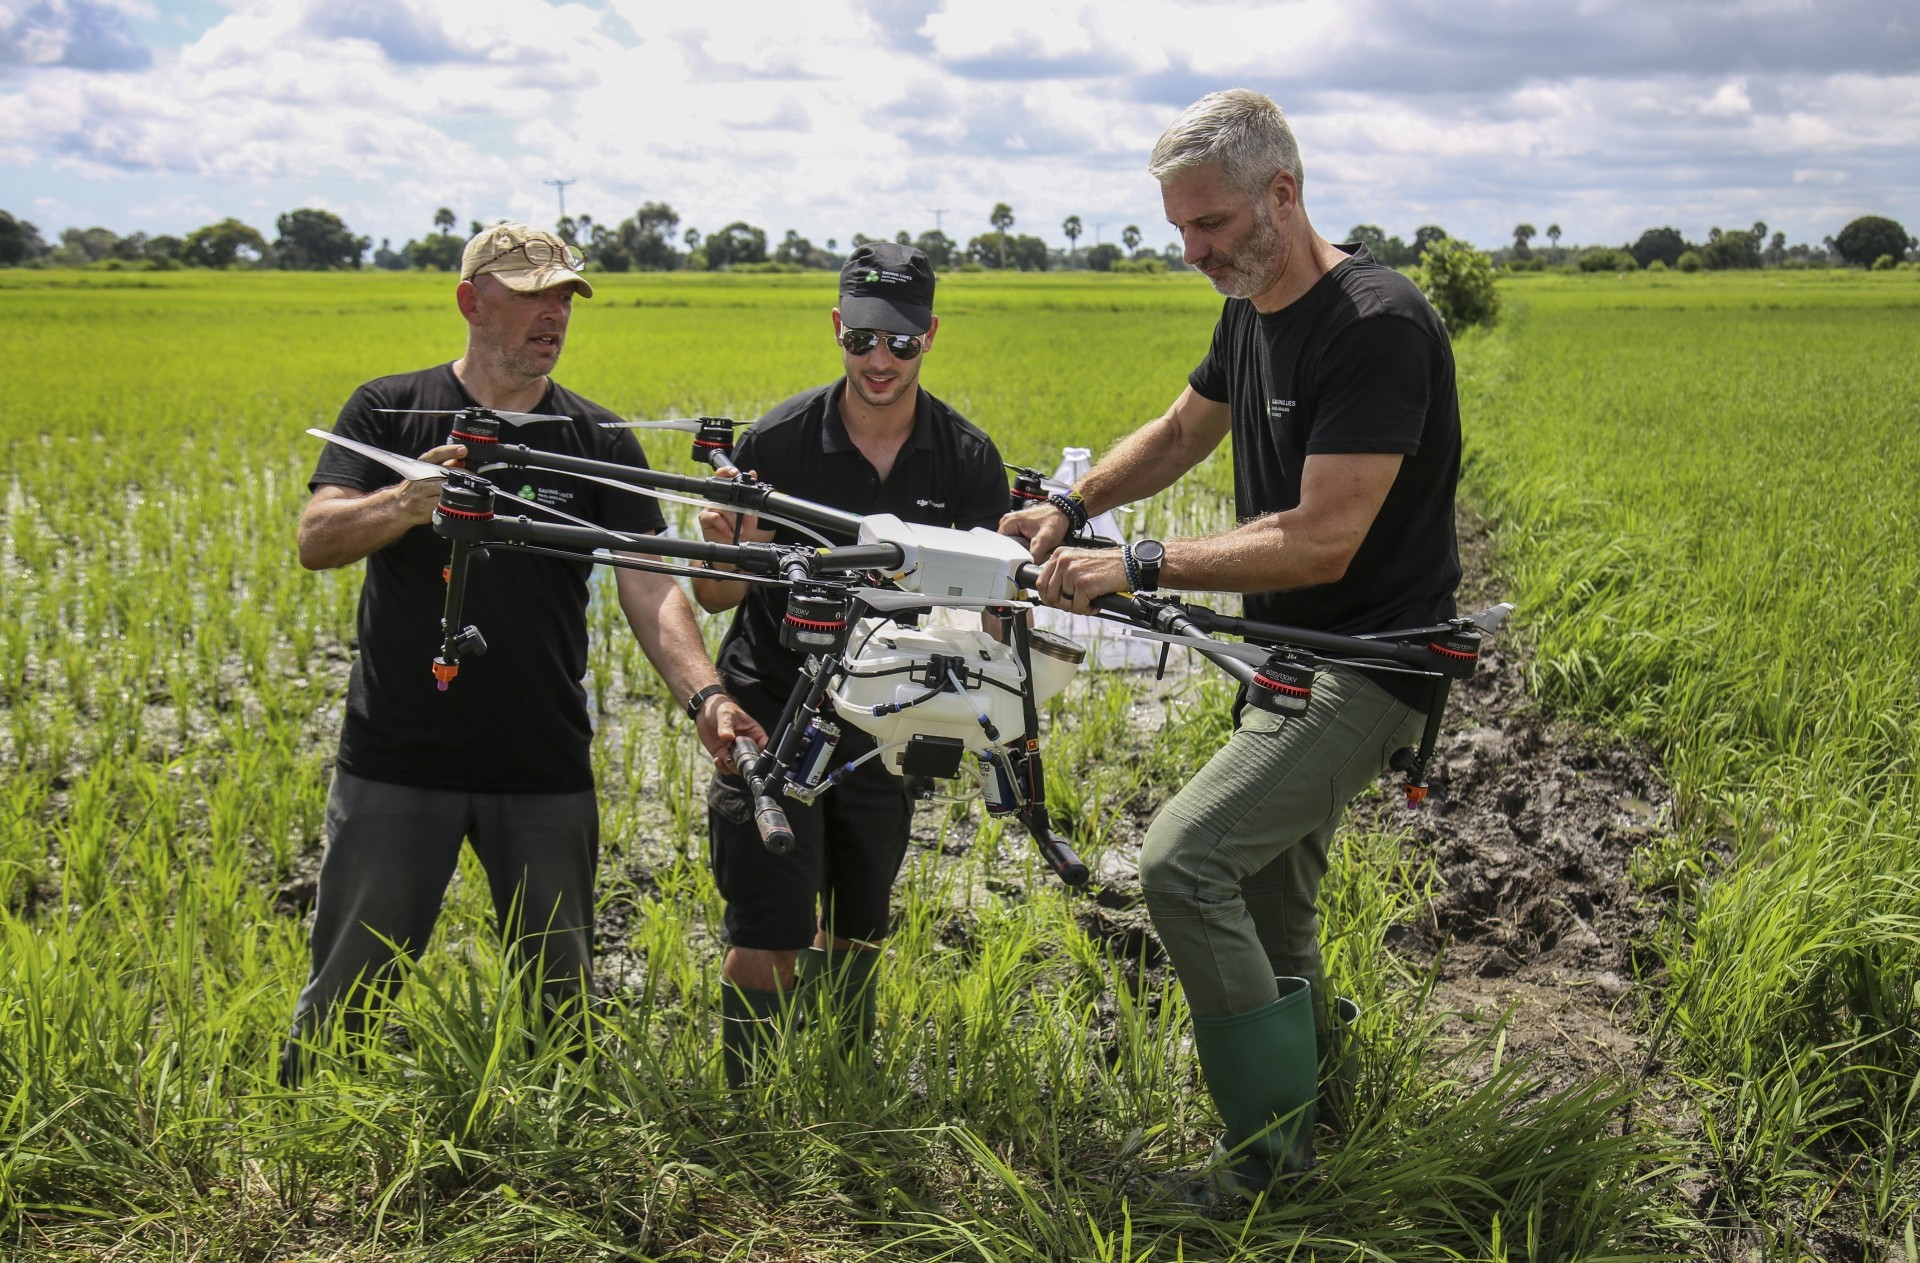 Knols (left), Rodriguez (centre) and Guido Welter, a consultant from the Anti-Malaria Drones programme, preparing a drone to spray the breeding grounds of malaria-carrying mosquitoes, at Cheju paddy farms.